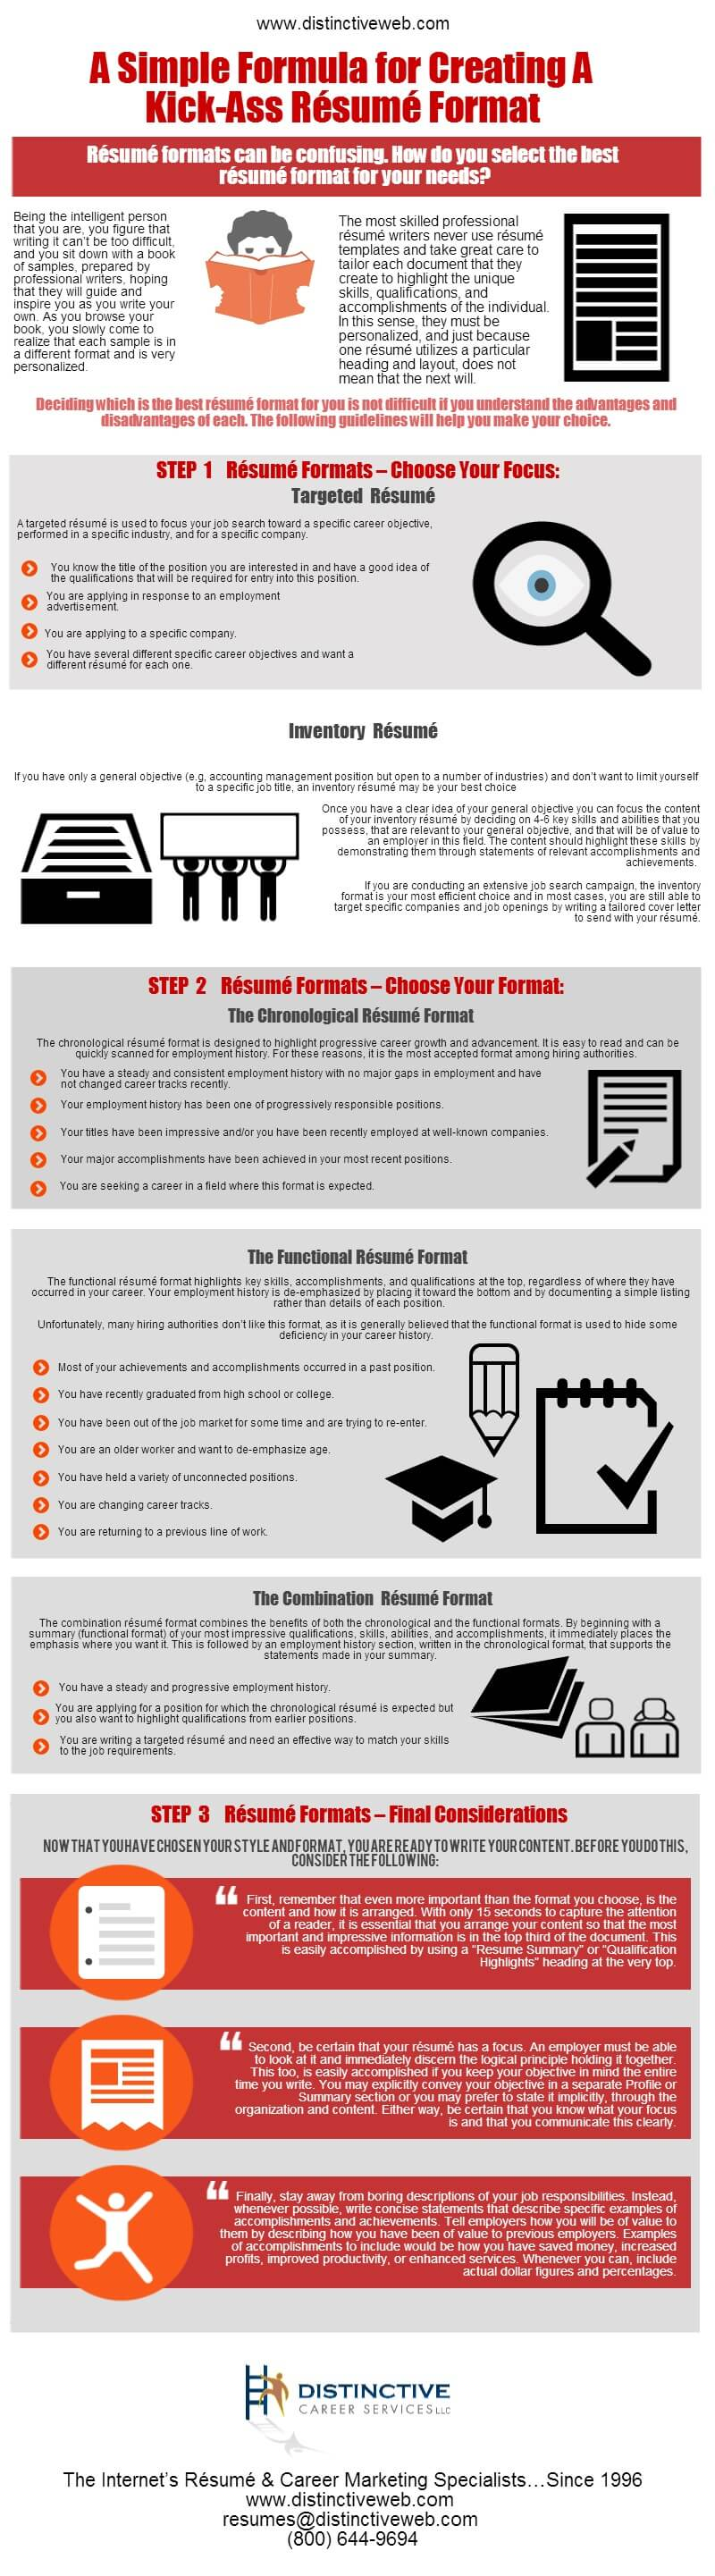 Create A Kick Ass Resume Infographic